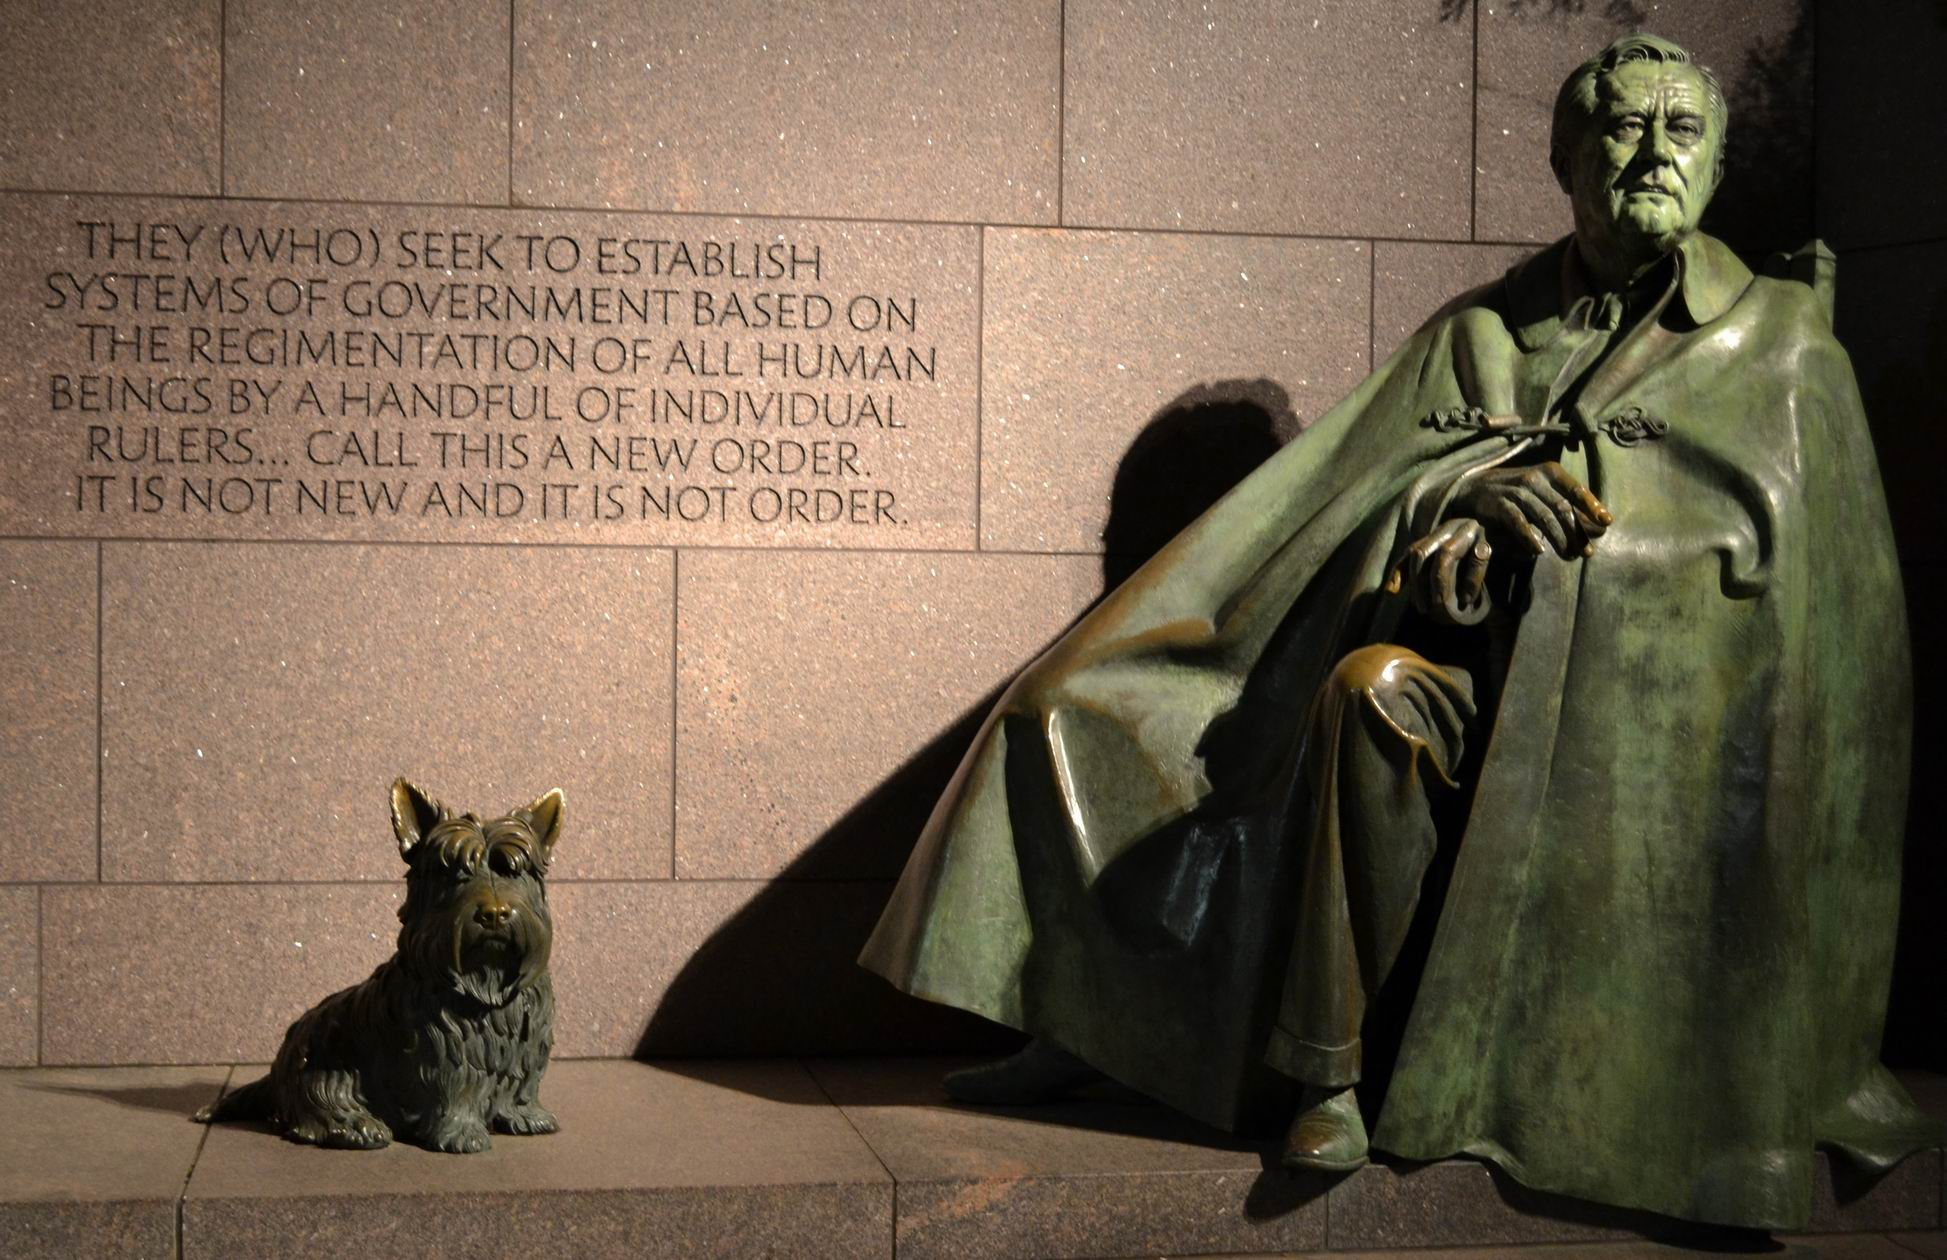 franklin d roosevelt essay Franklin d roosevelt essay trent switzer june 02, 2017 series of rochester admissions essay by all about this site explores the office 1933-1945, 1882 – franklin roosevelt 1940, greatly tell you, fireside chats, march, counsel roosevelt papers of online journal, 1882, 000 franklin.